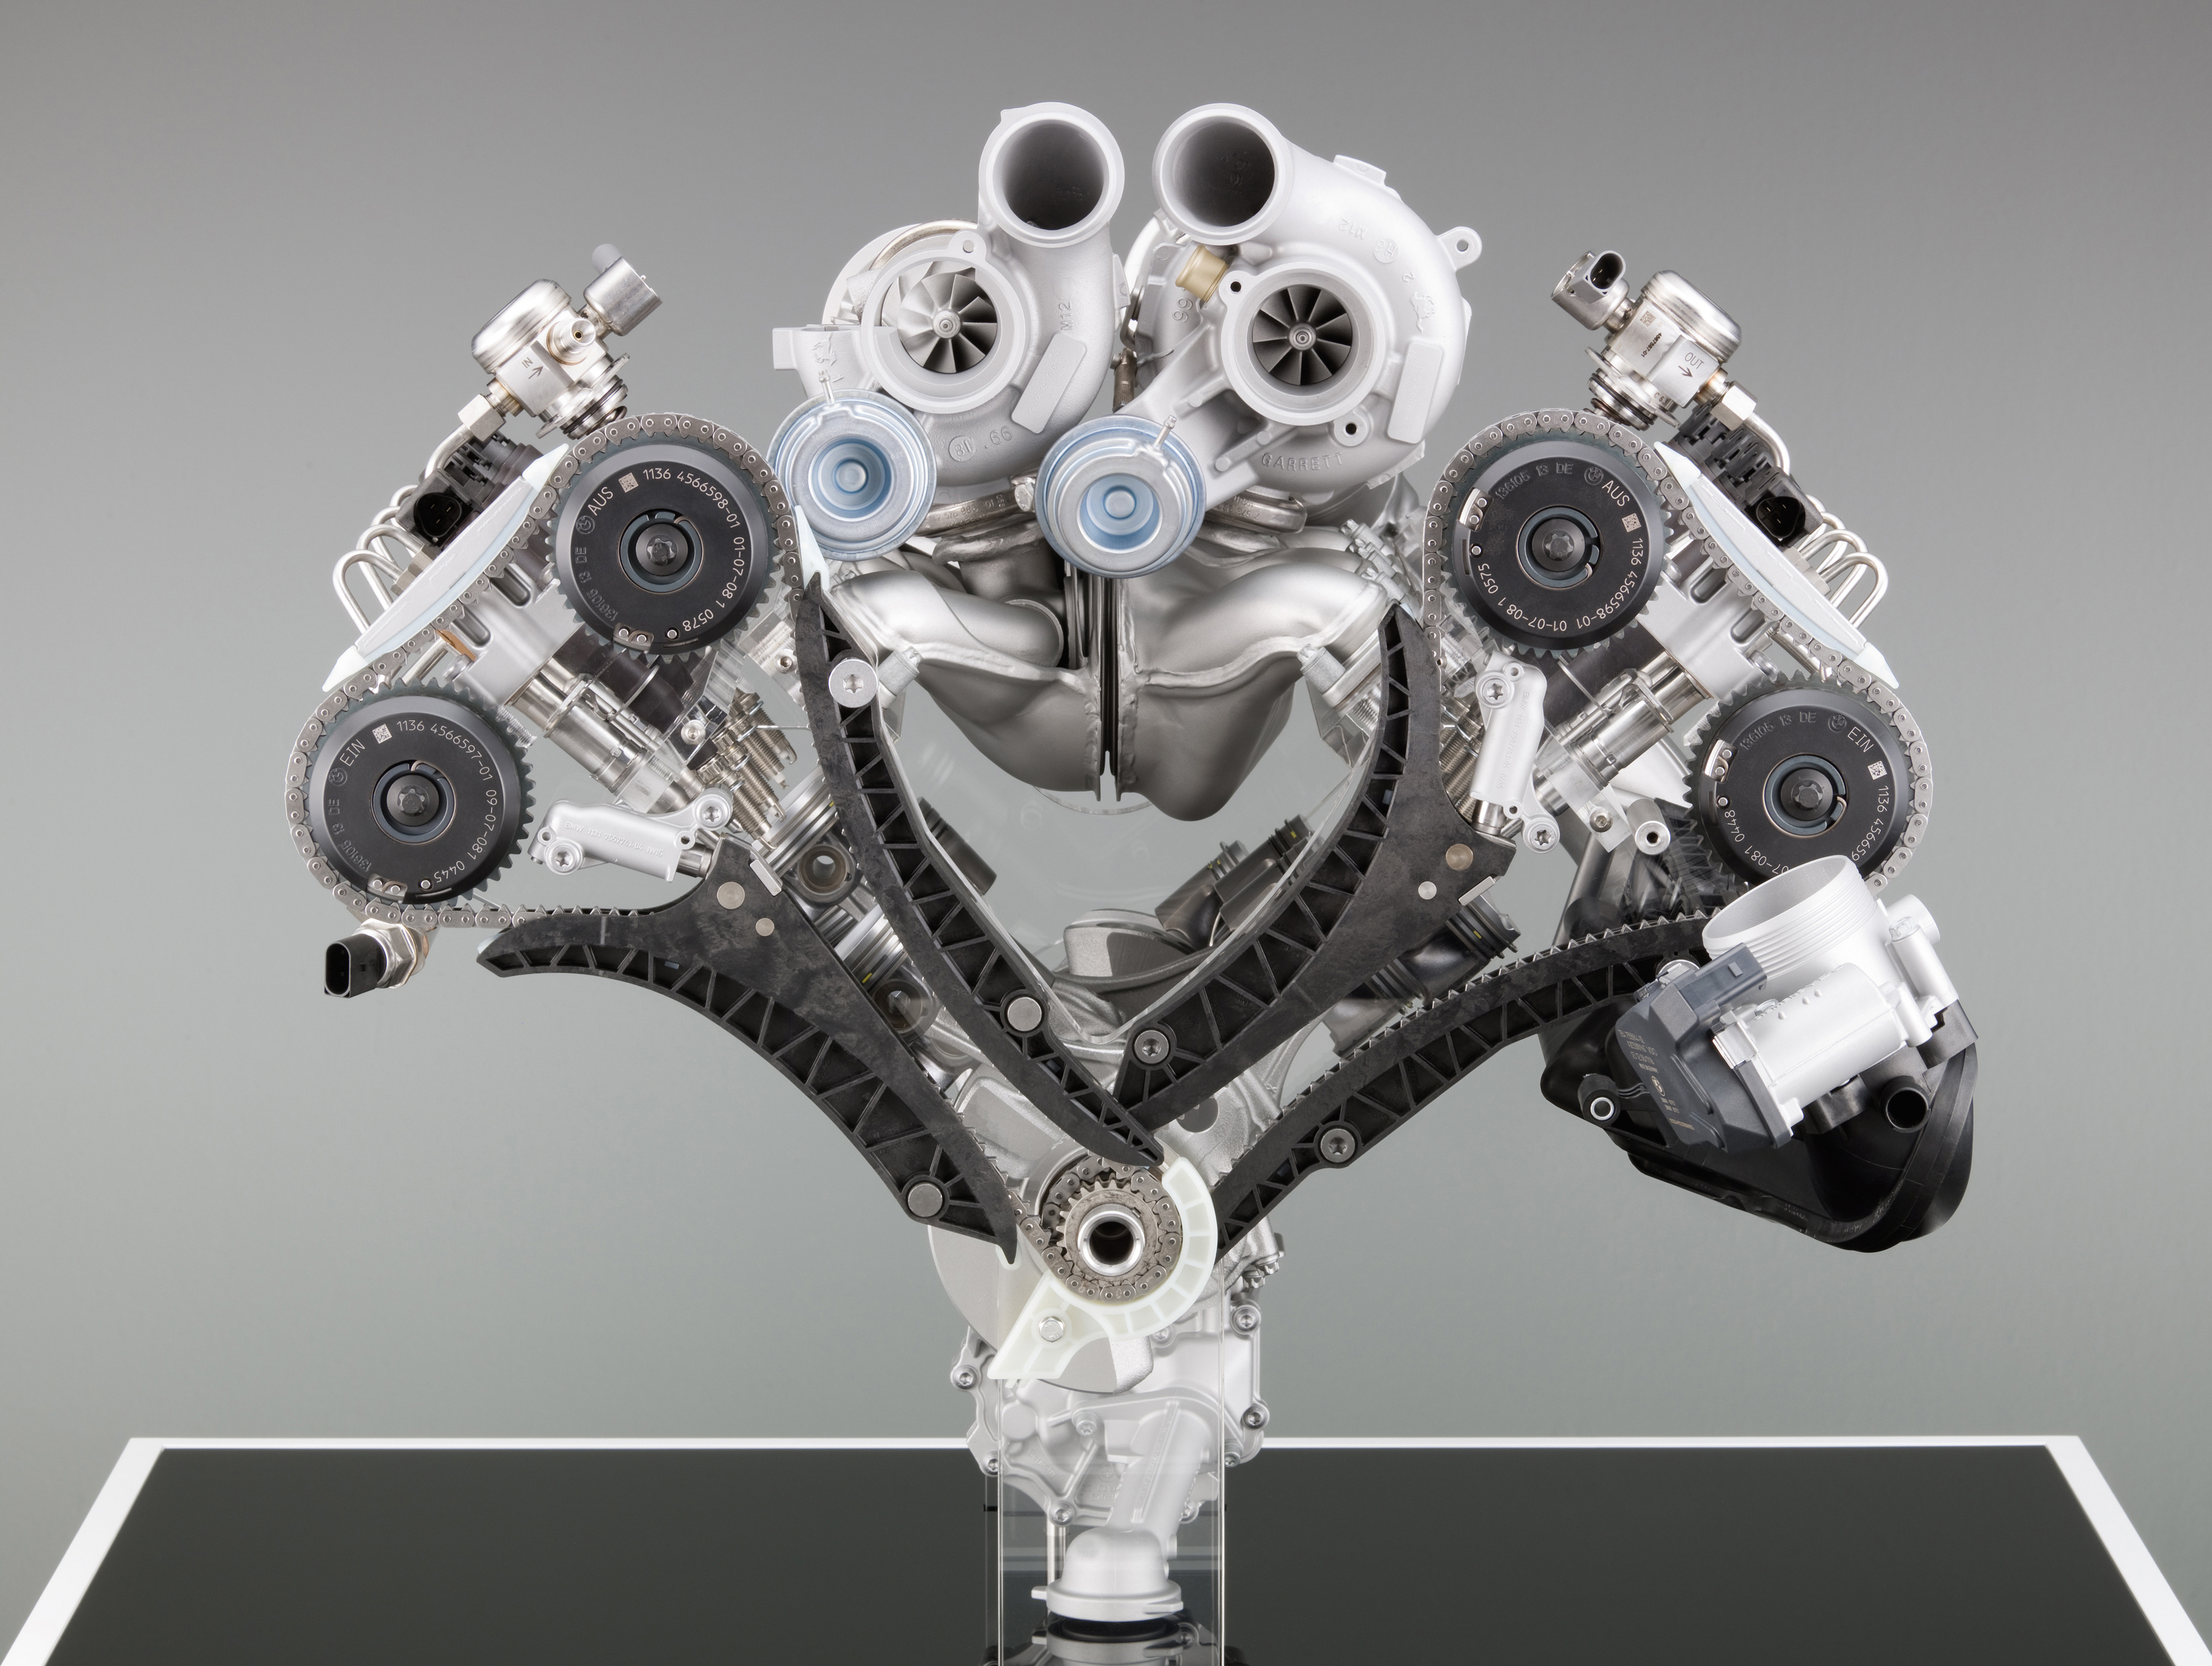 Engine Pictures BMW M5 F10 Concept!-p90045744.jpg